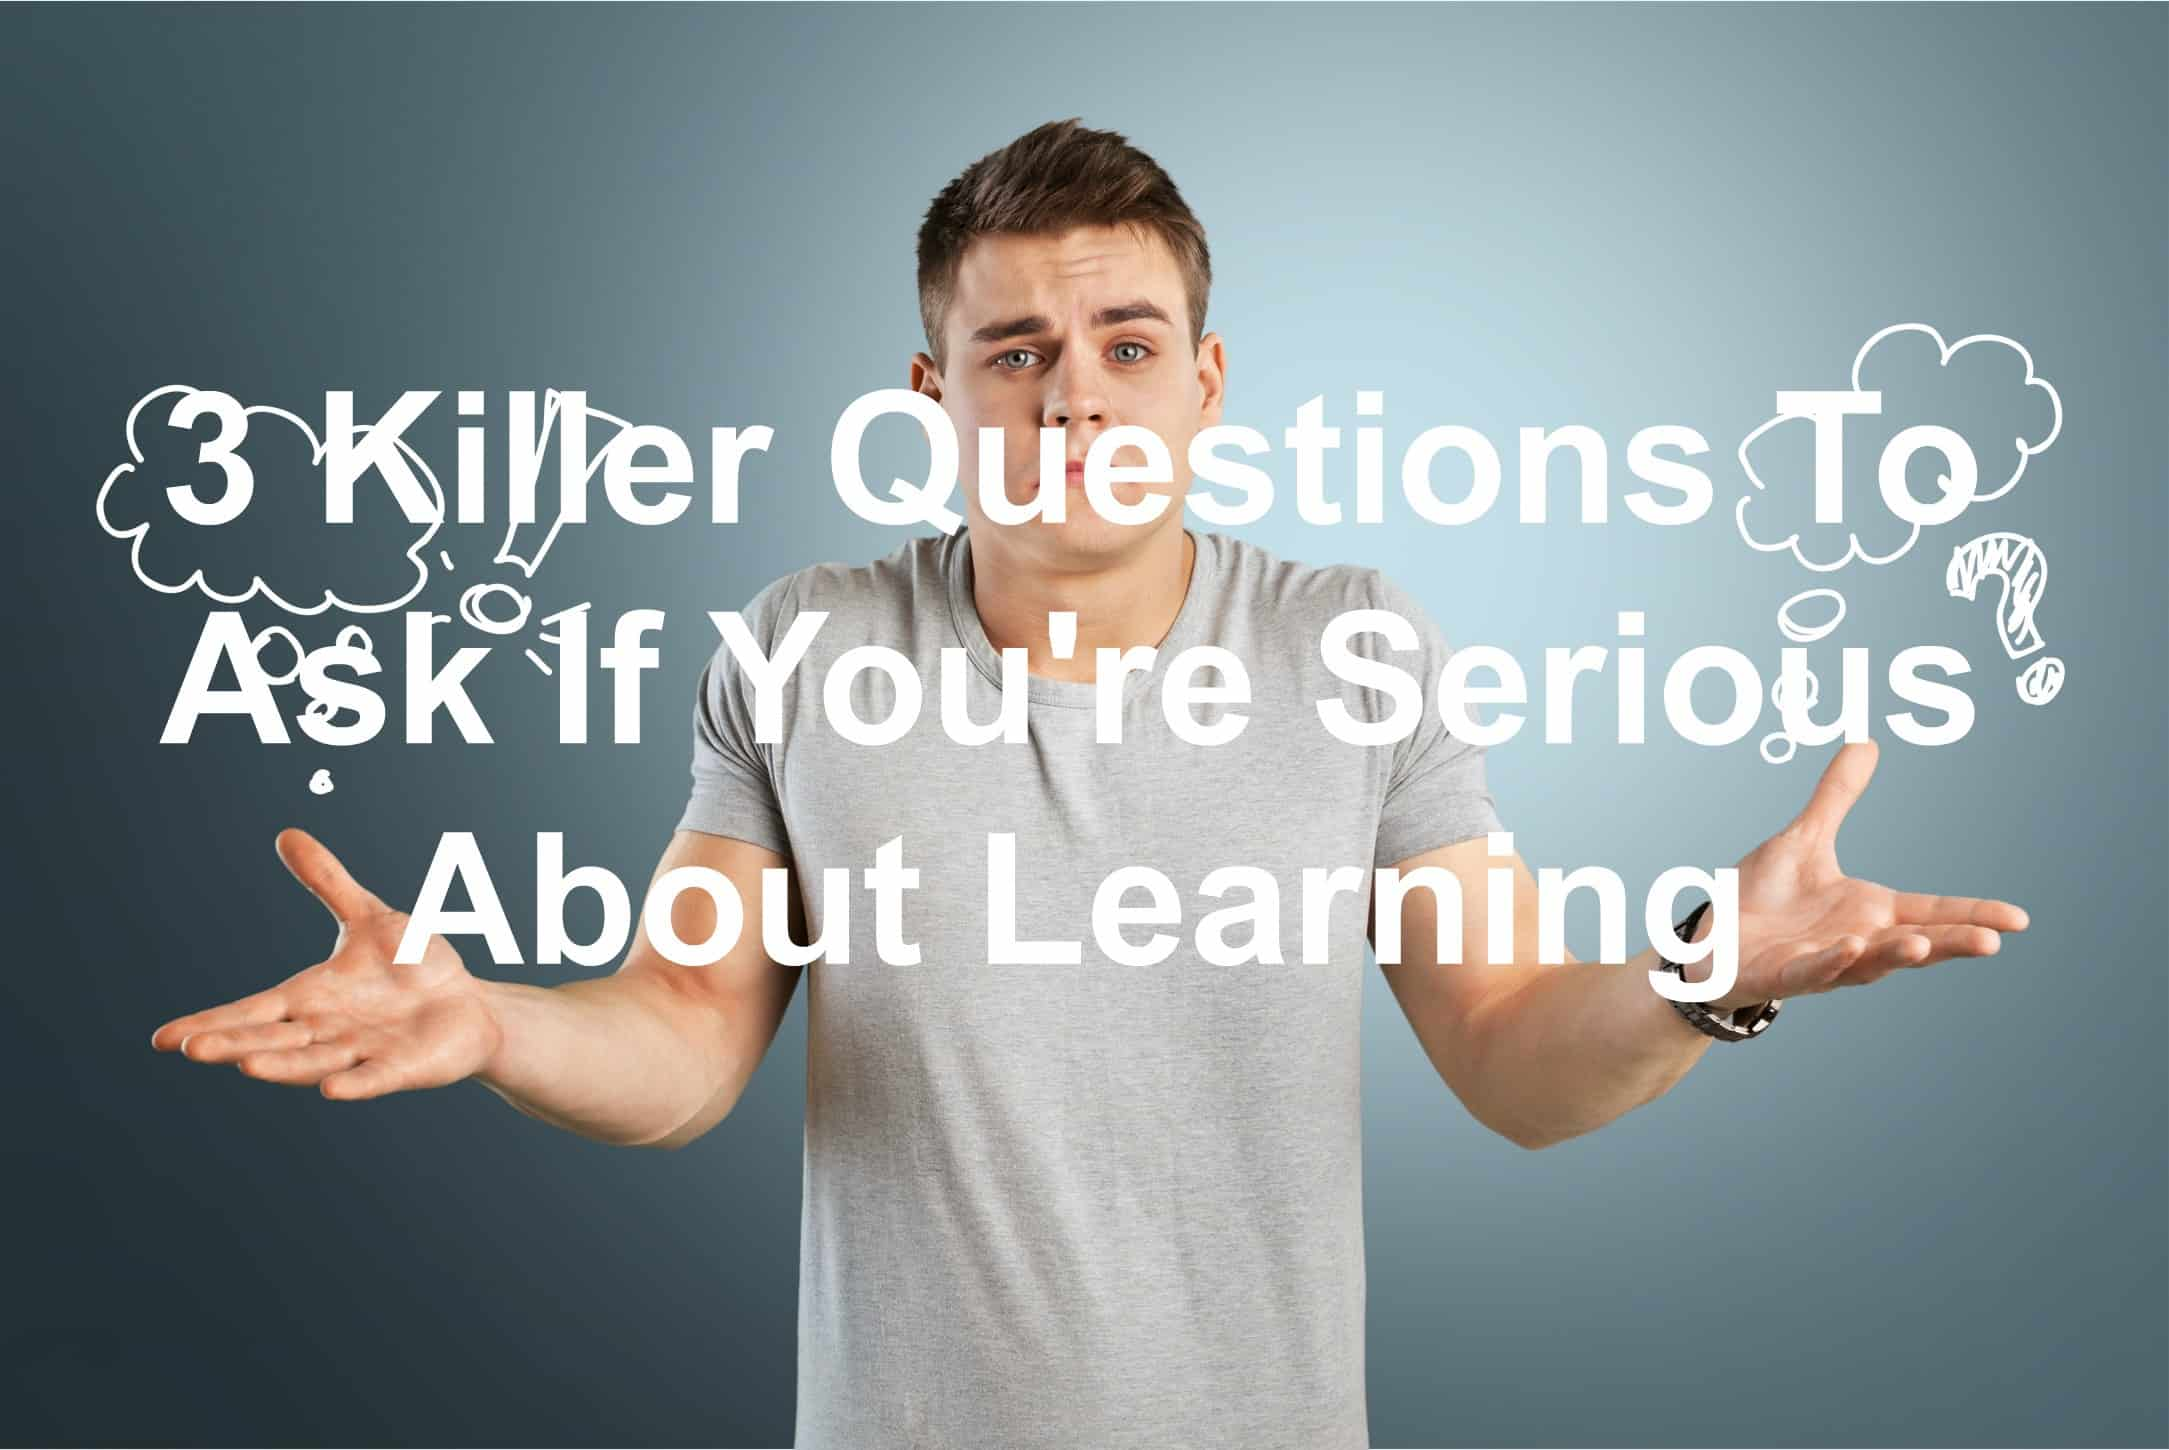 Questions to learn